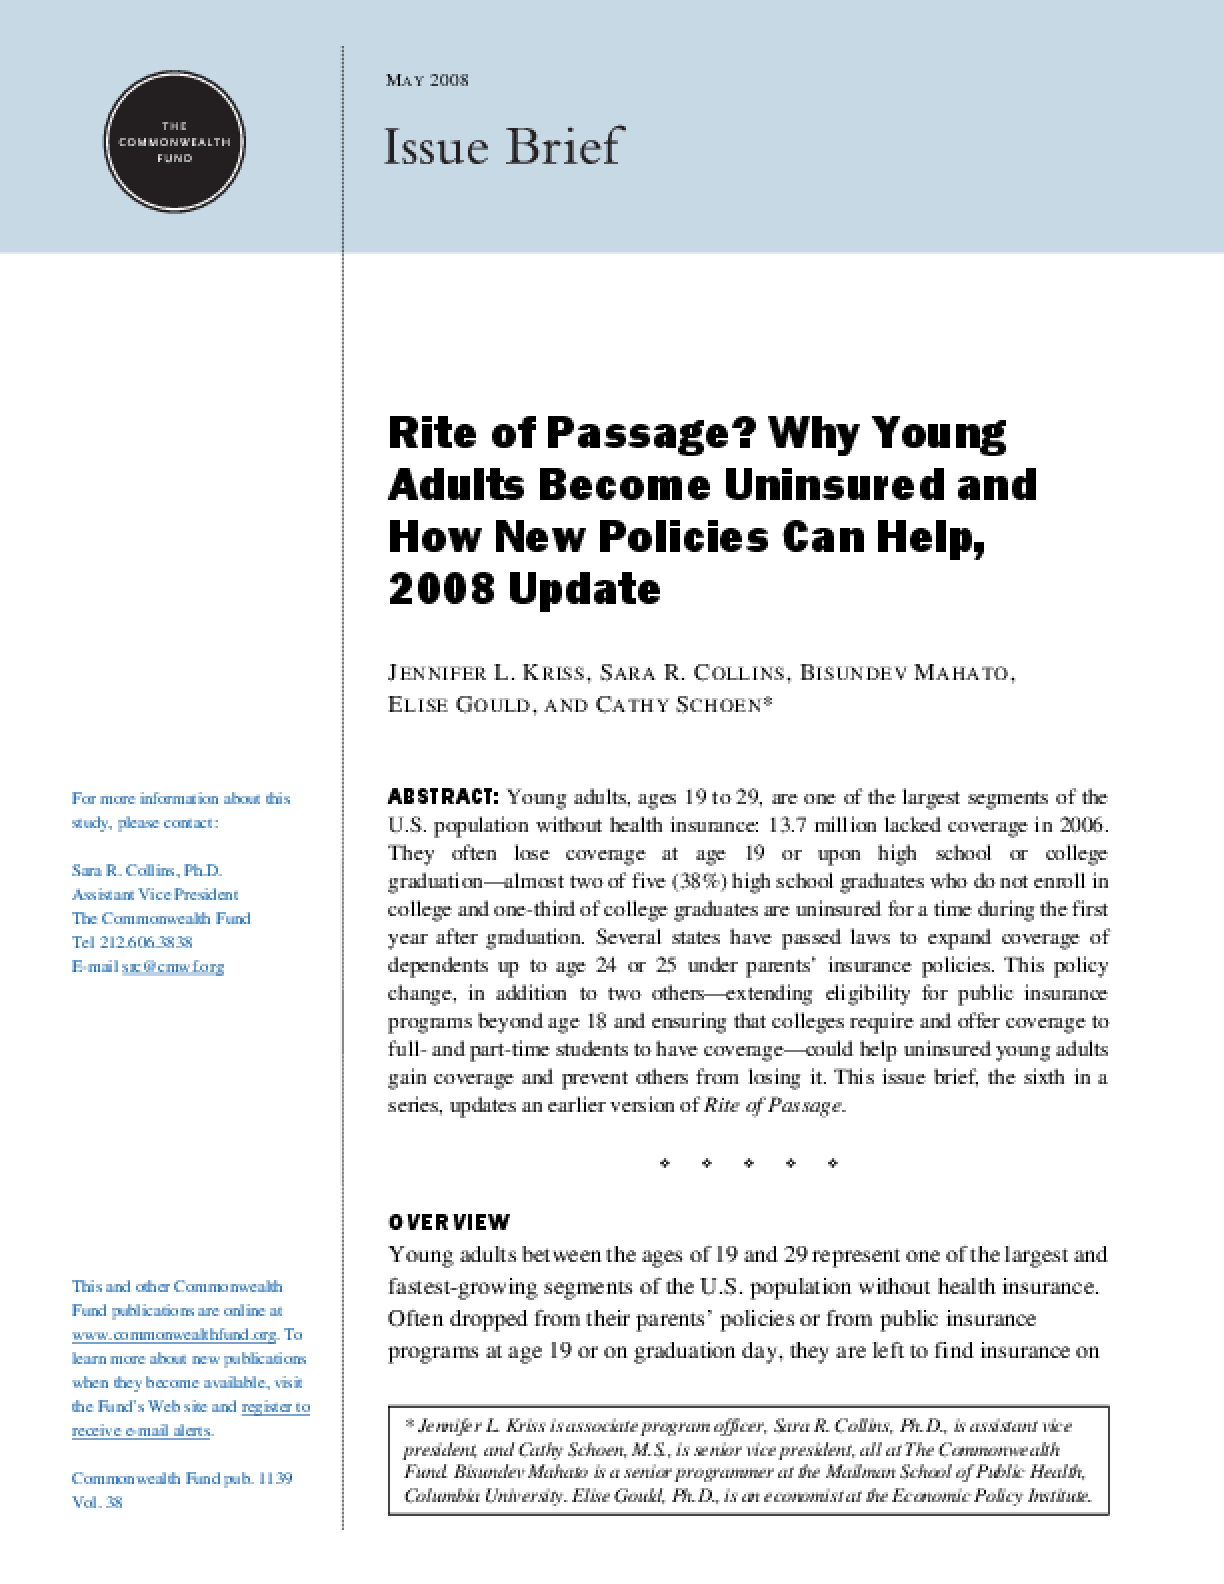 Rite of Passage? Why Young Adults Become Uninsured and How New Policies Can Help, 2008 Update